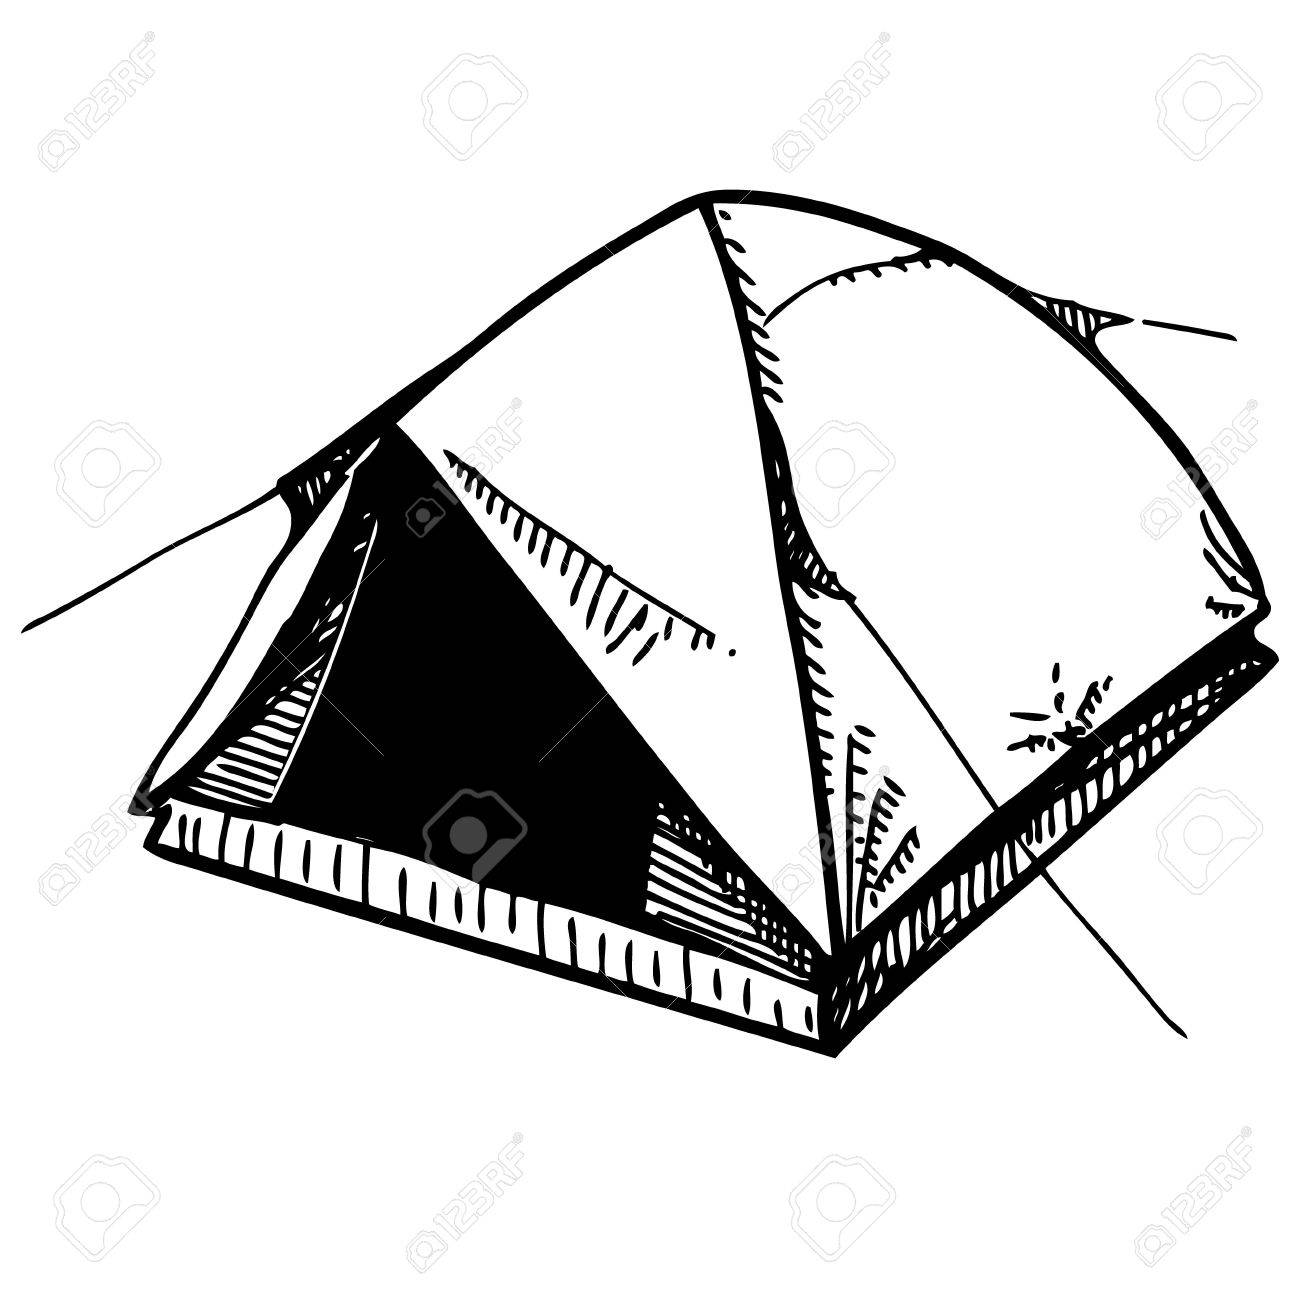 1300x1300 Tent Stake Stock Photos. Royalty Free Business Images